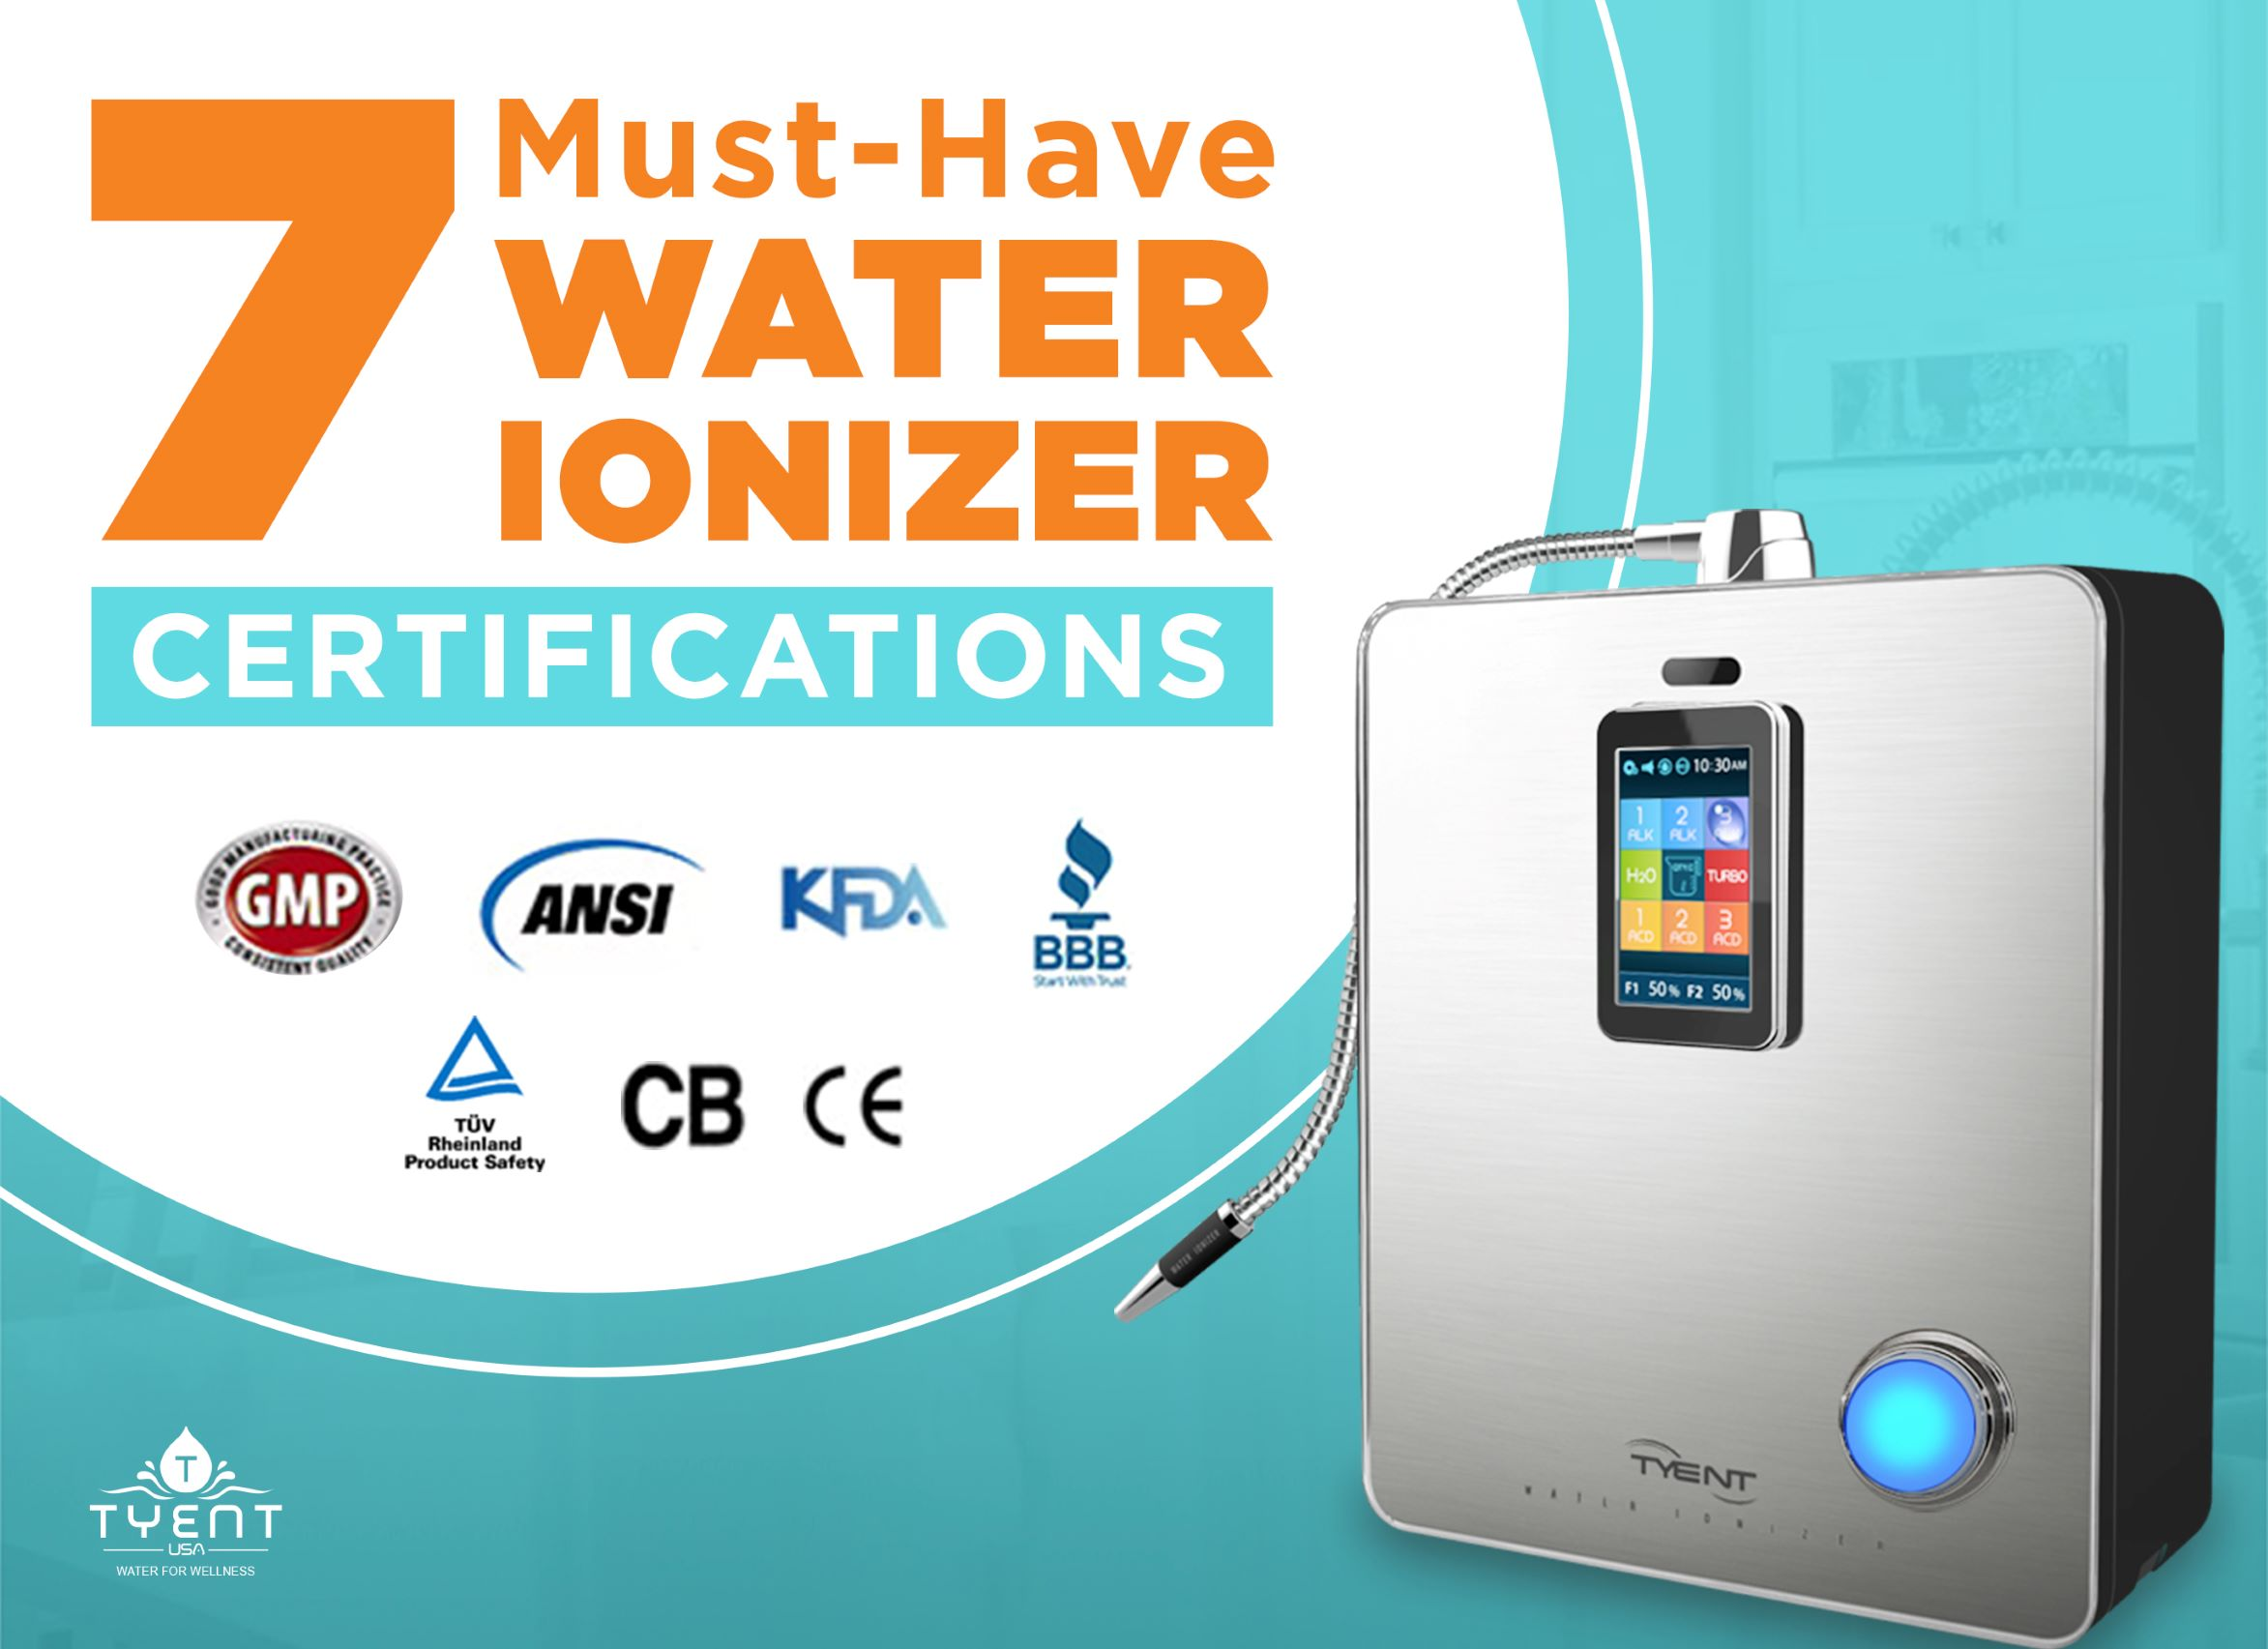 7 Must-Have Water Ionizer Certifications